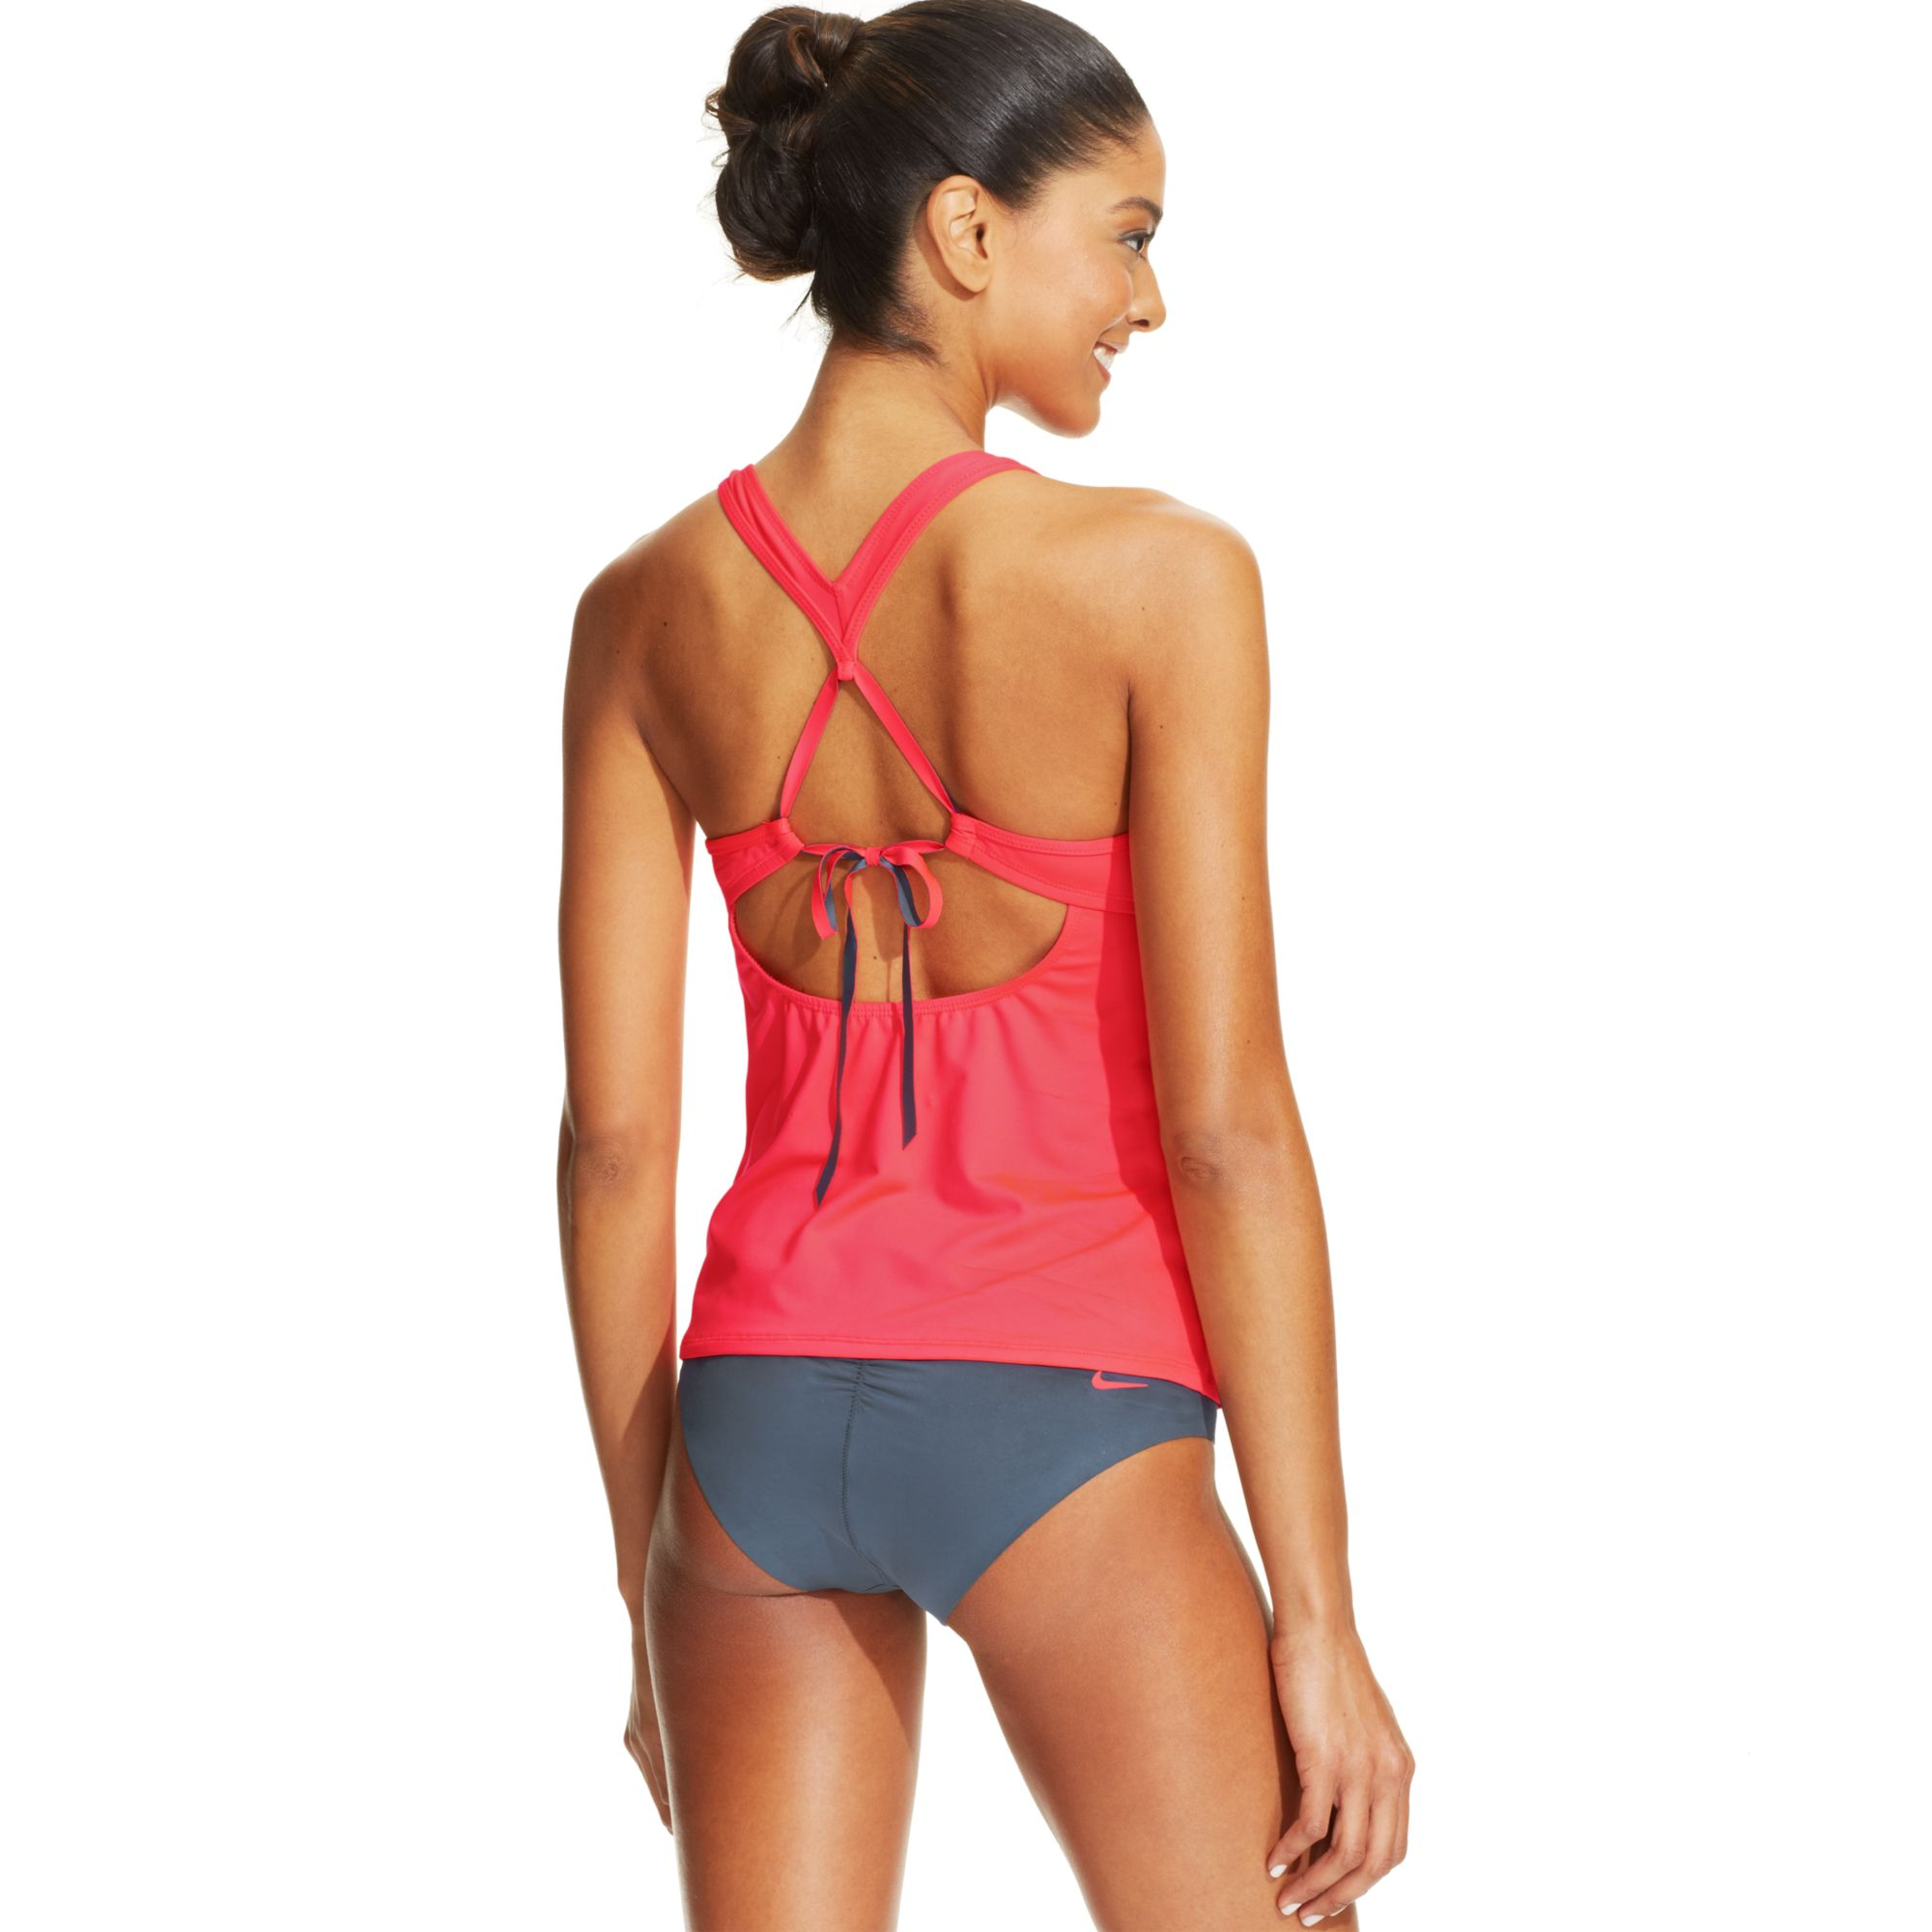 d153d1eed2 Nike Crossover Racerback Tankini Top in Pink - Lyst